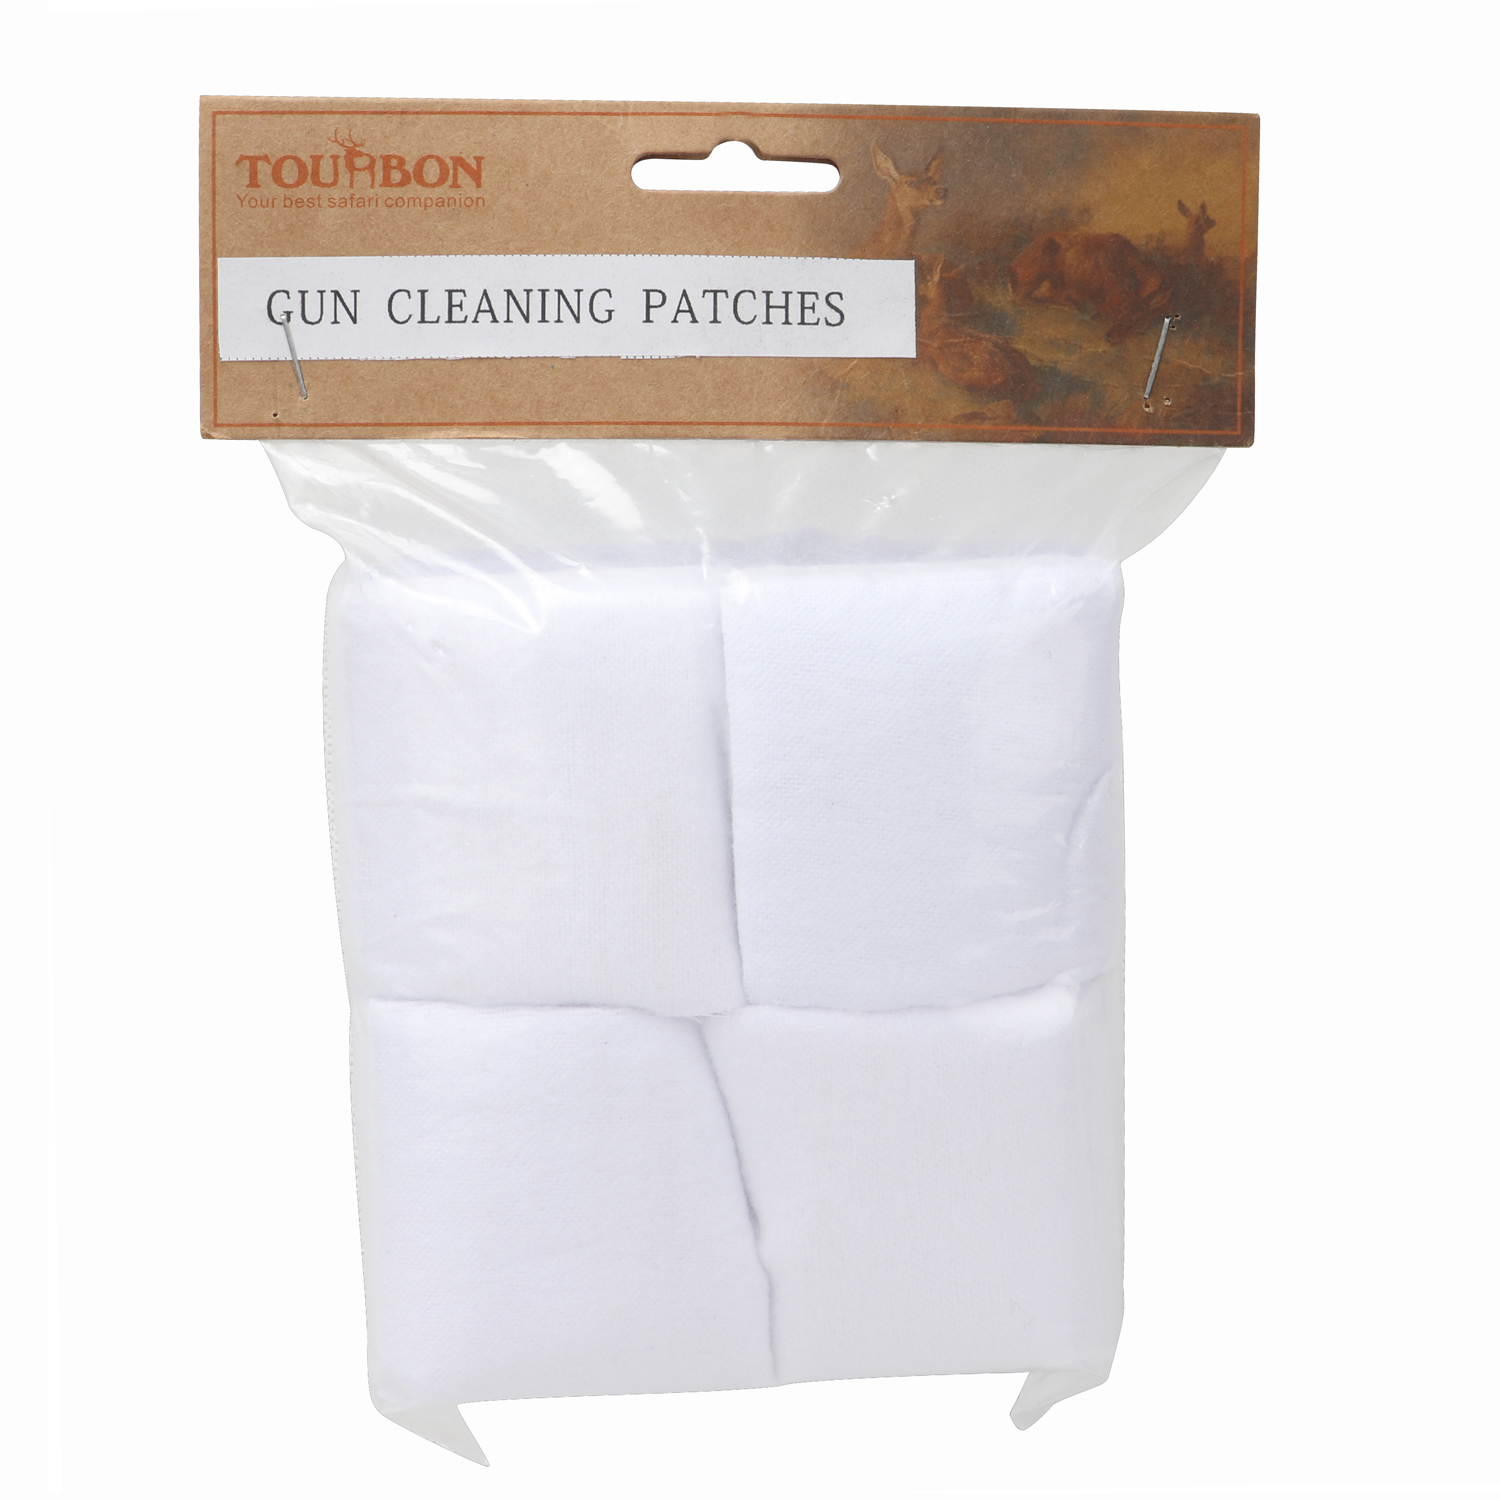 "Tourbon 300Pcs Cotton Gun Cleaning Patches For Pistol & Rifle 2-1/4"" X 2-1/4"" Shotgun Kits"